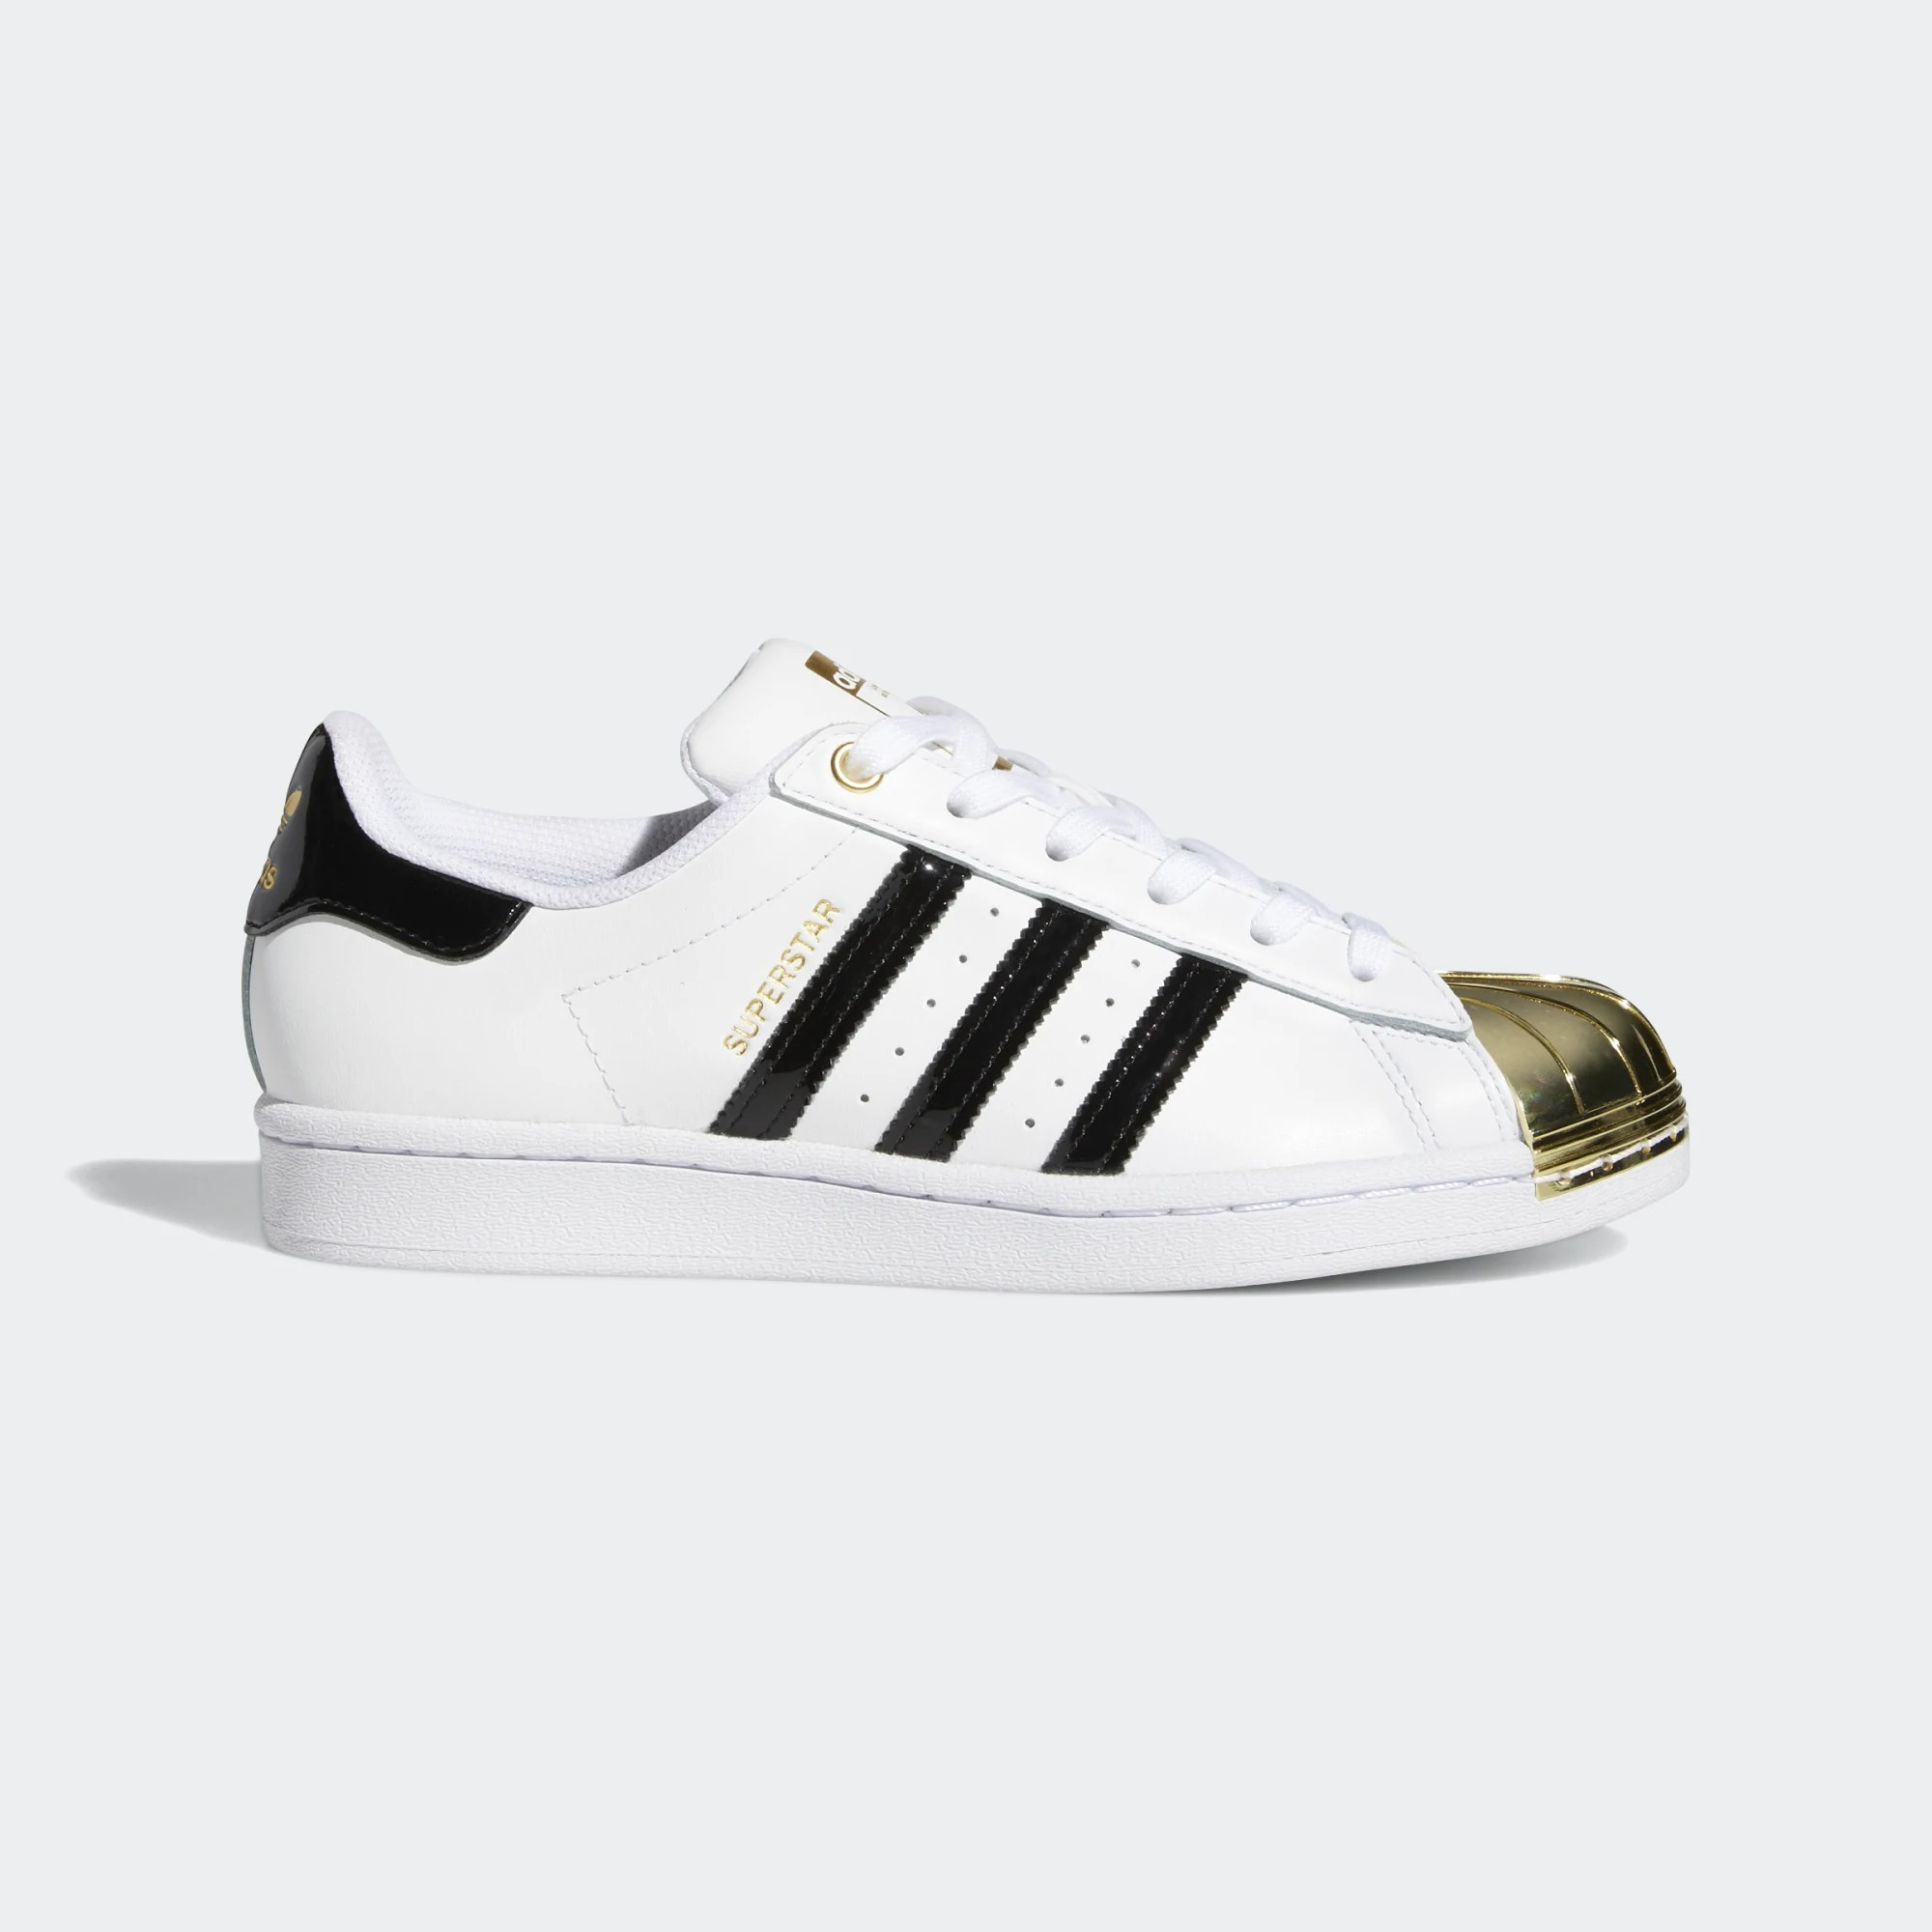 Adidas Originals Superstar Metal Toe Mujer FV3310